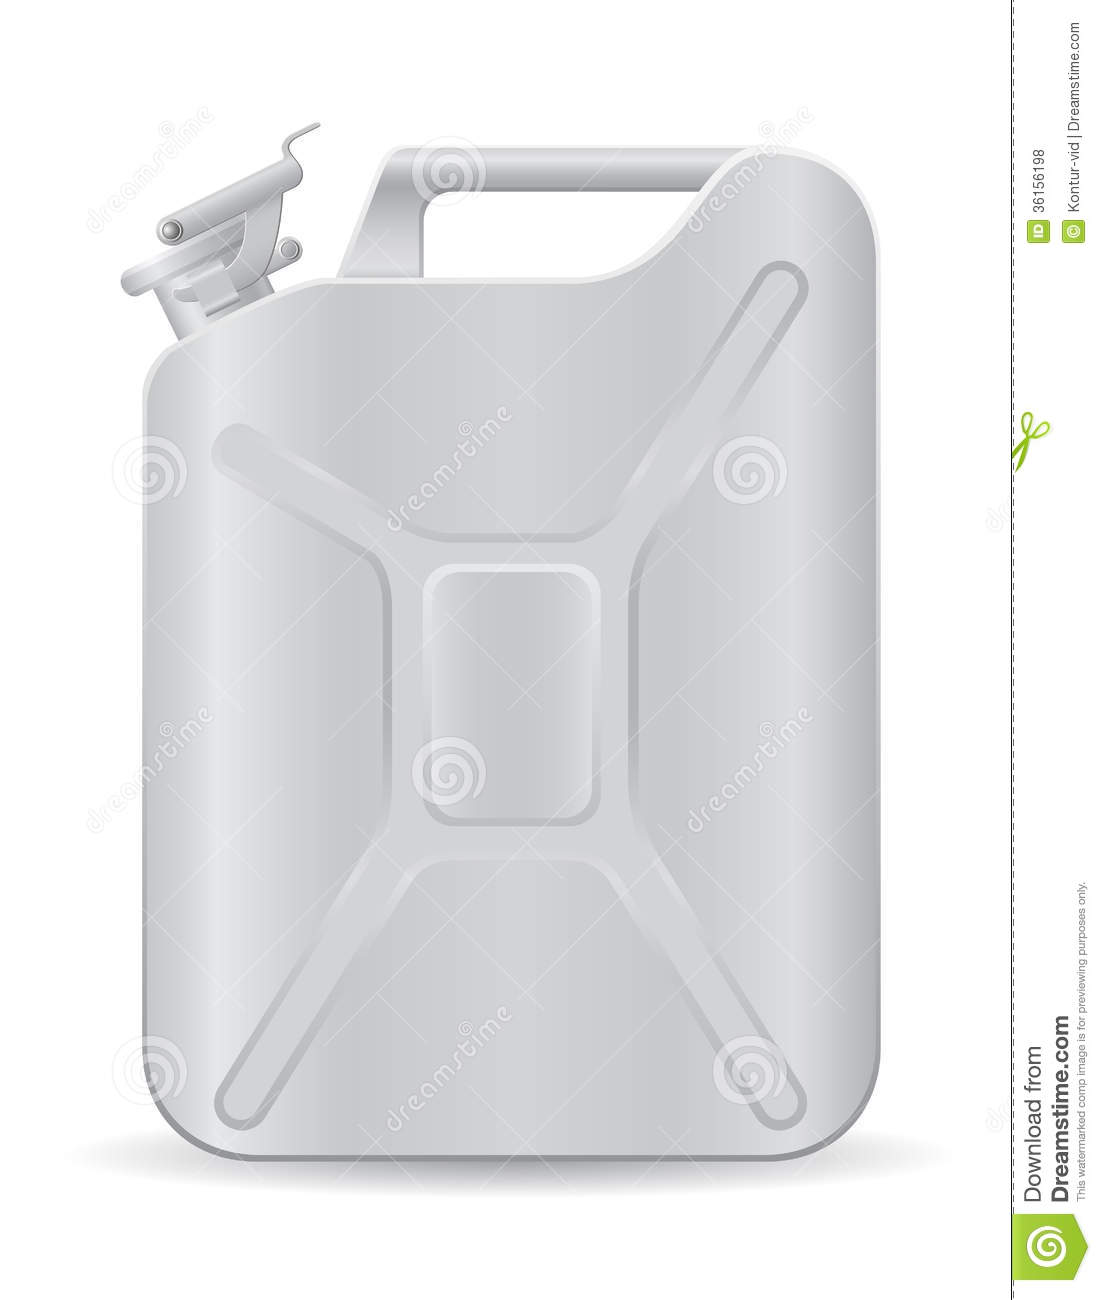 Metallic Jerrycan Vector Illustration Royalty Free Stock Photos.